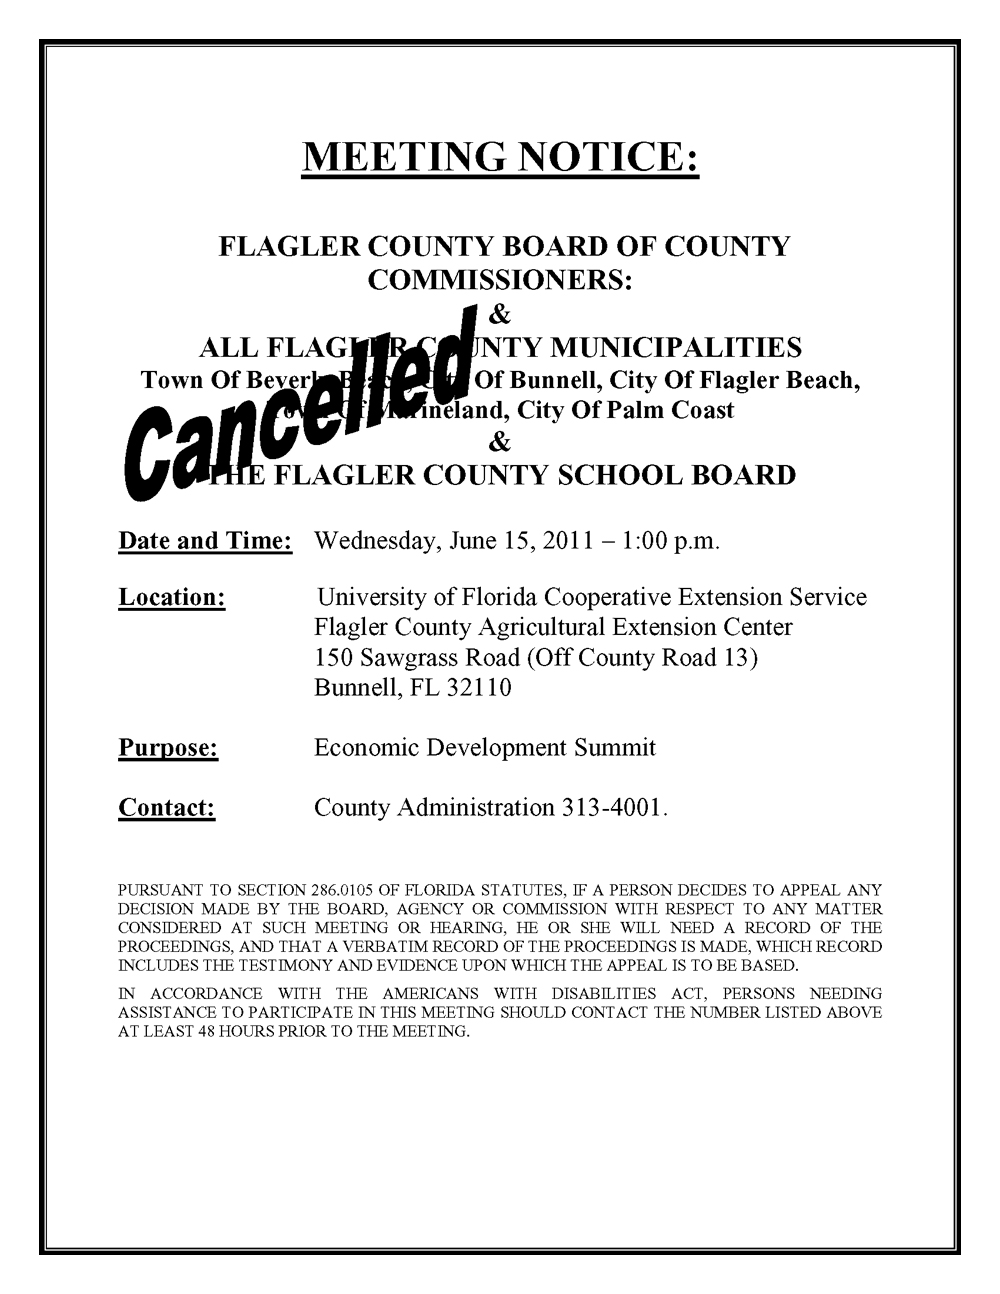 Home Contract Cancellation Letter] cancellation letter for job ...